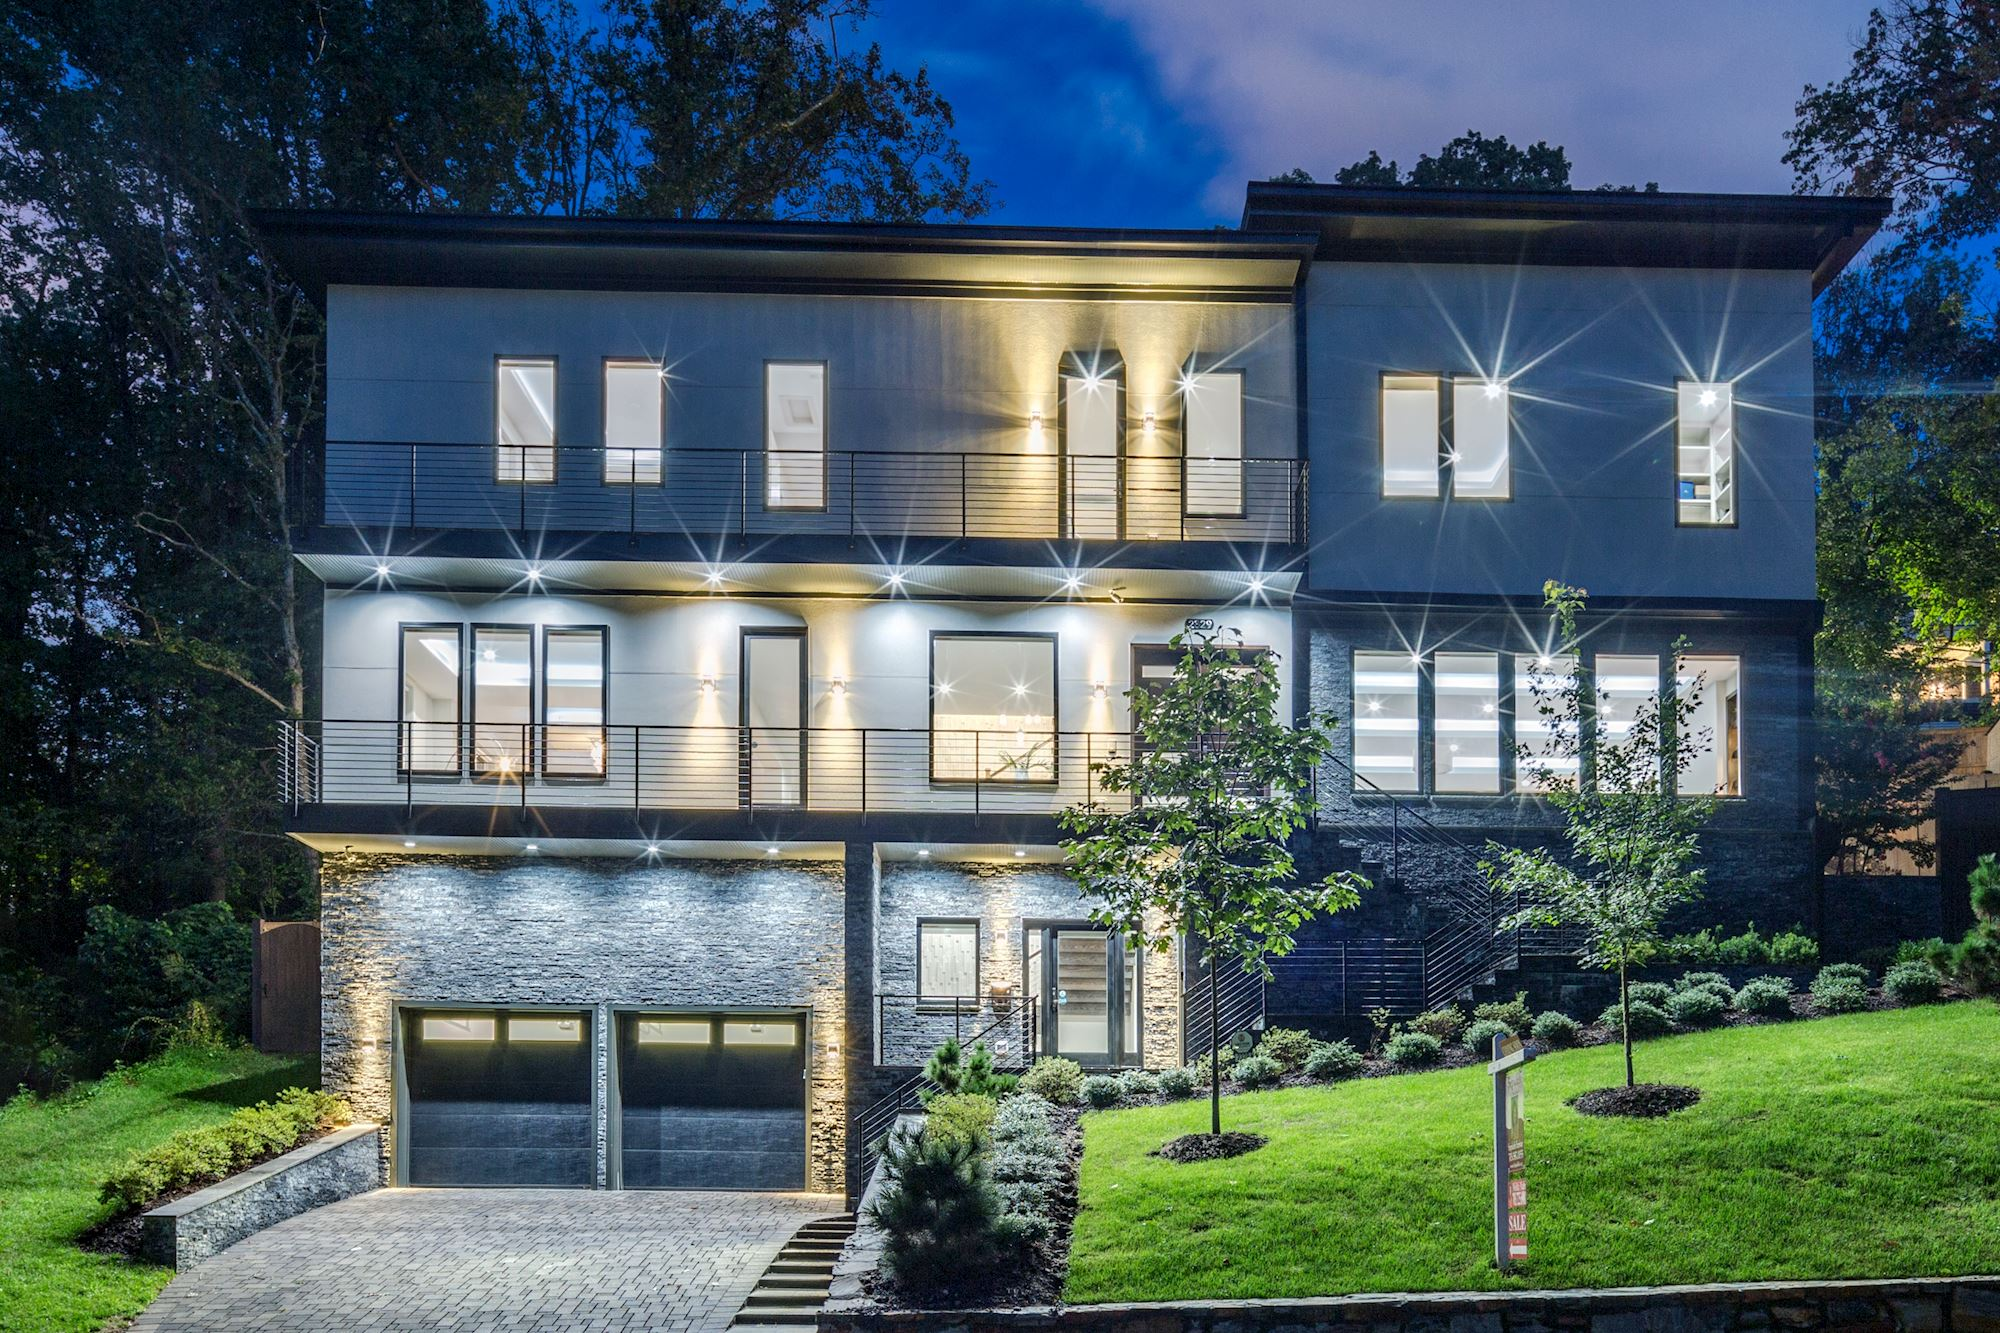 North Arlington's Most Sought After Address - World Class Modern Luxury w/Optimal Accessibility & Privacy